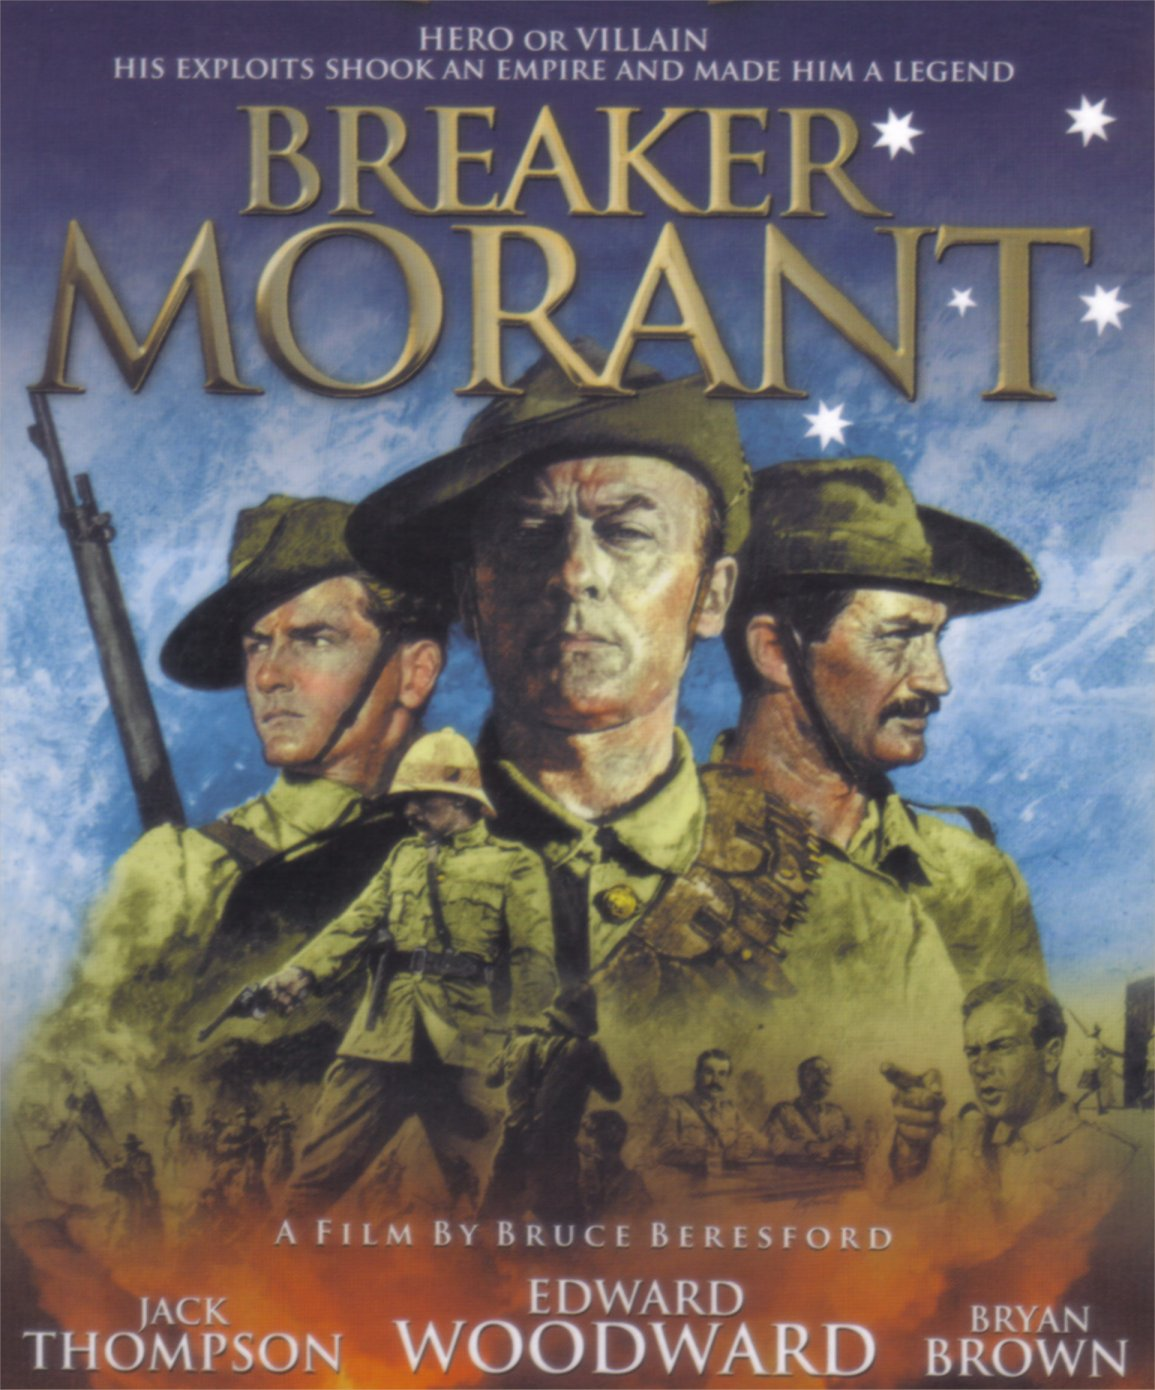 An analysis of the topic of the film of breaker morant